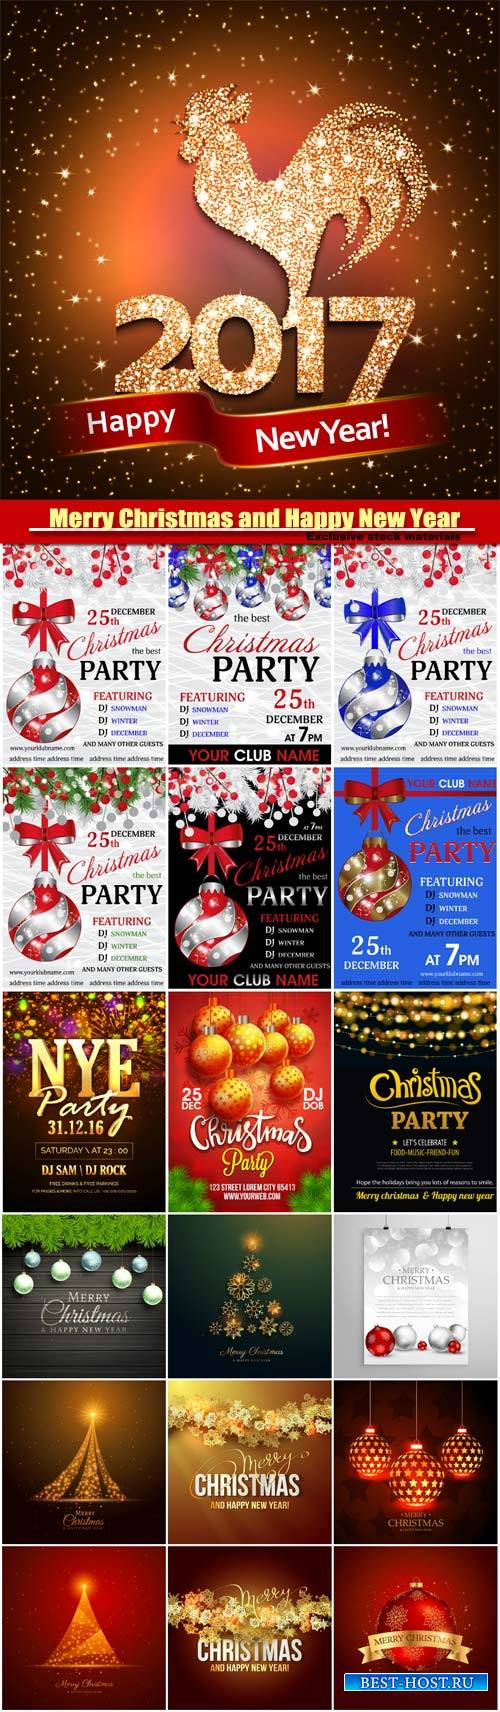 Christmas party vector invitation, Merry Christmas and Happy New Year